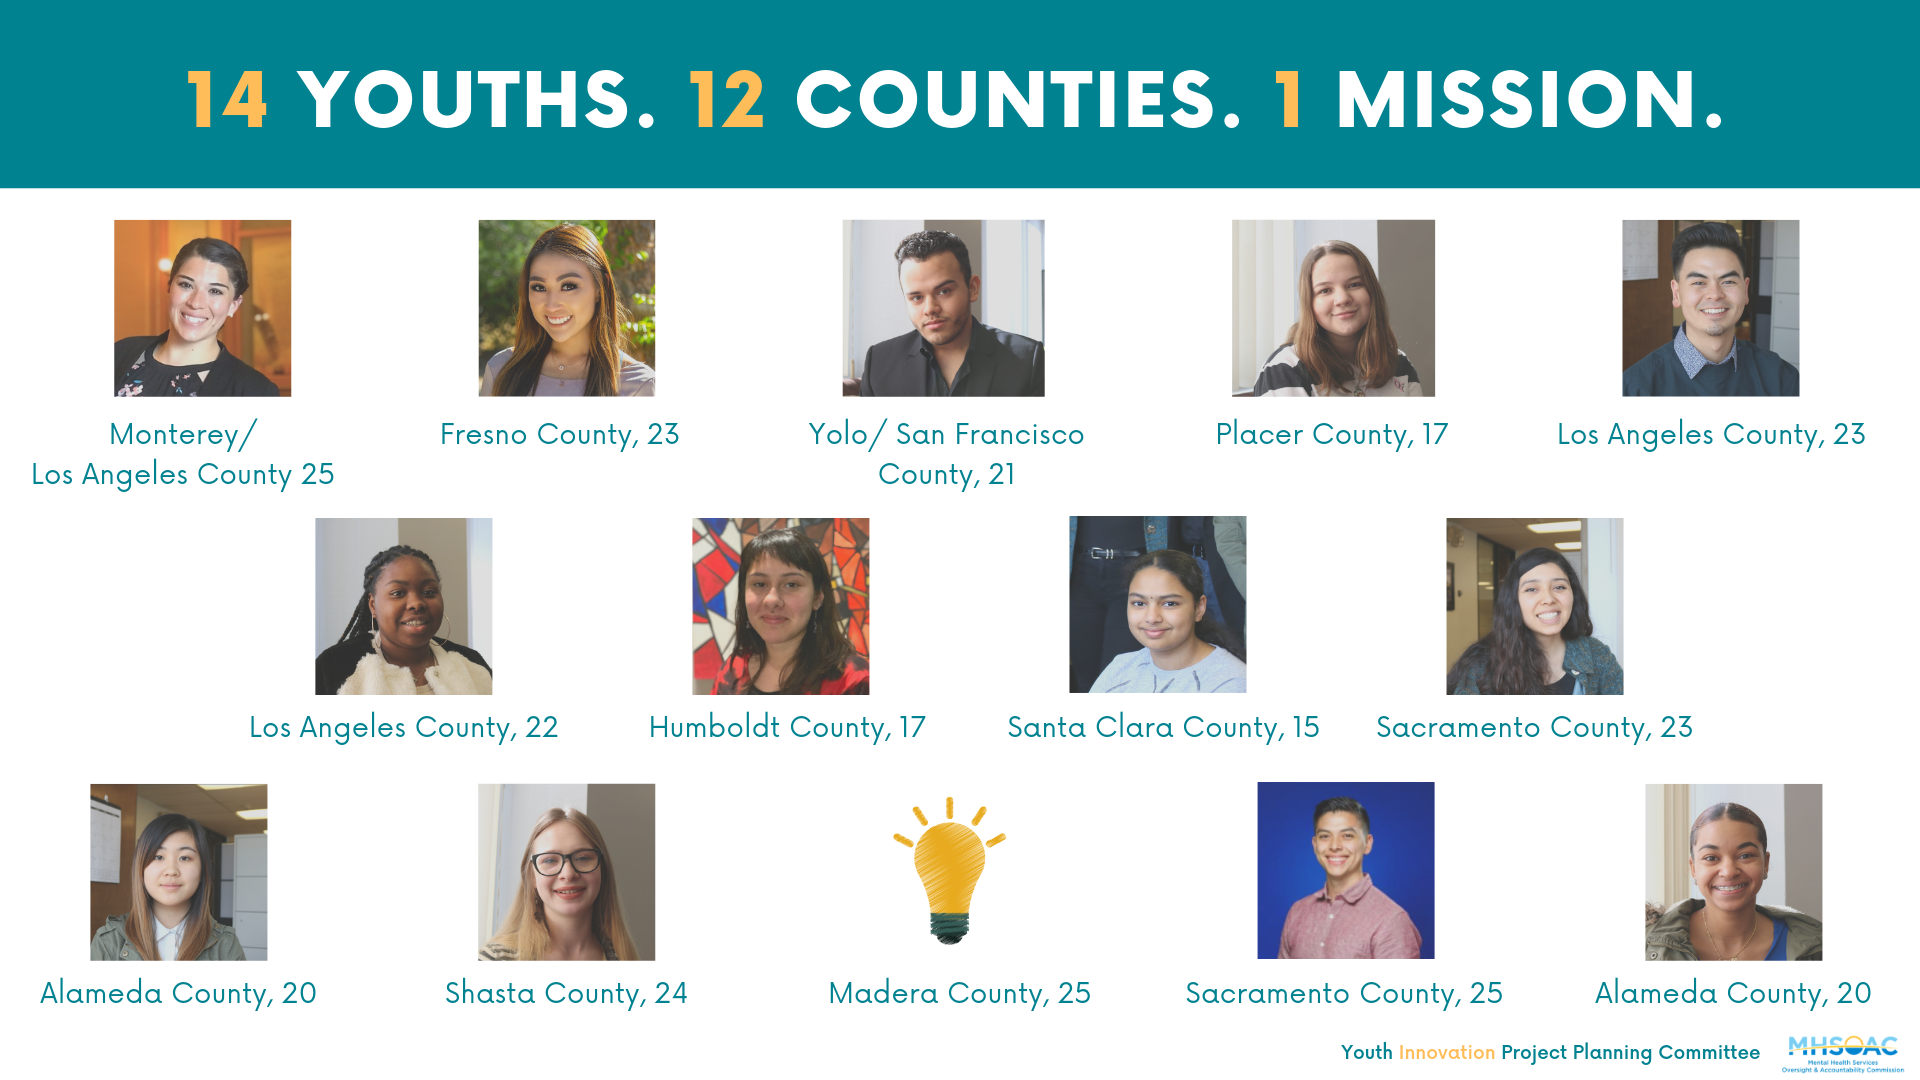 Reads 14 youths, 12 counties, 1 mission and includes photos of youths smiling